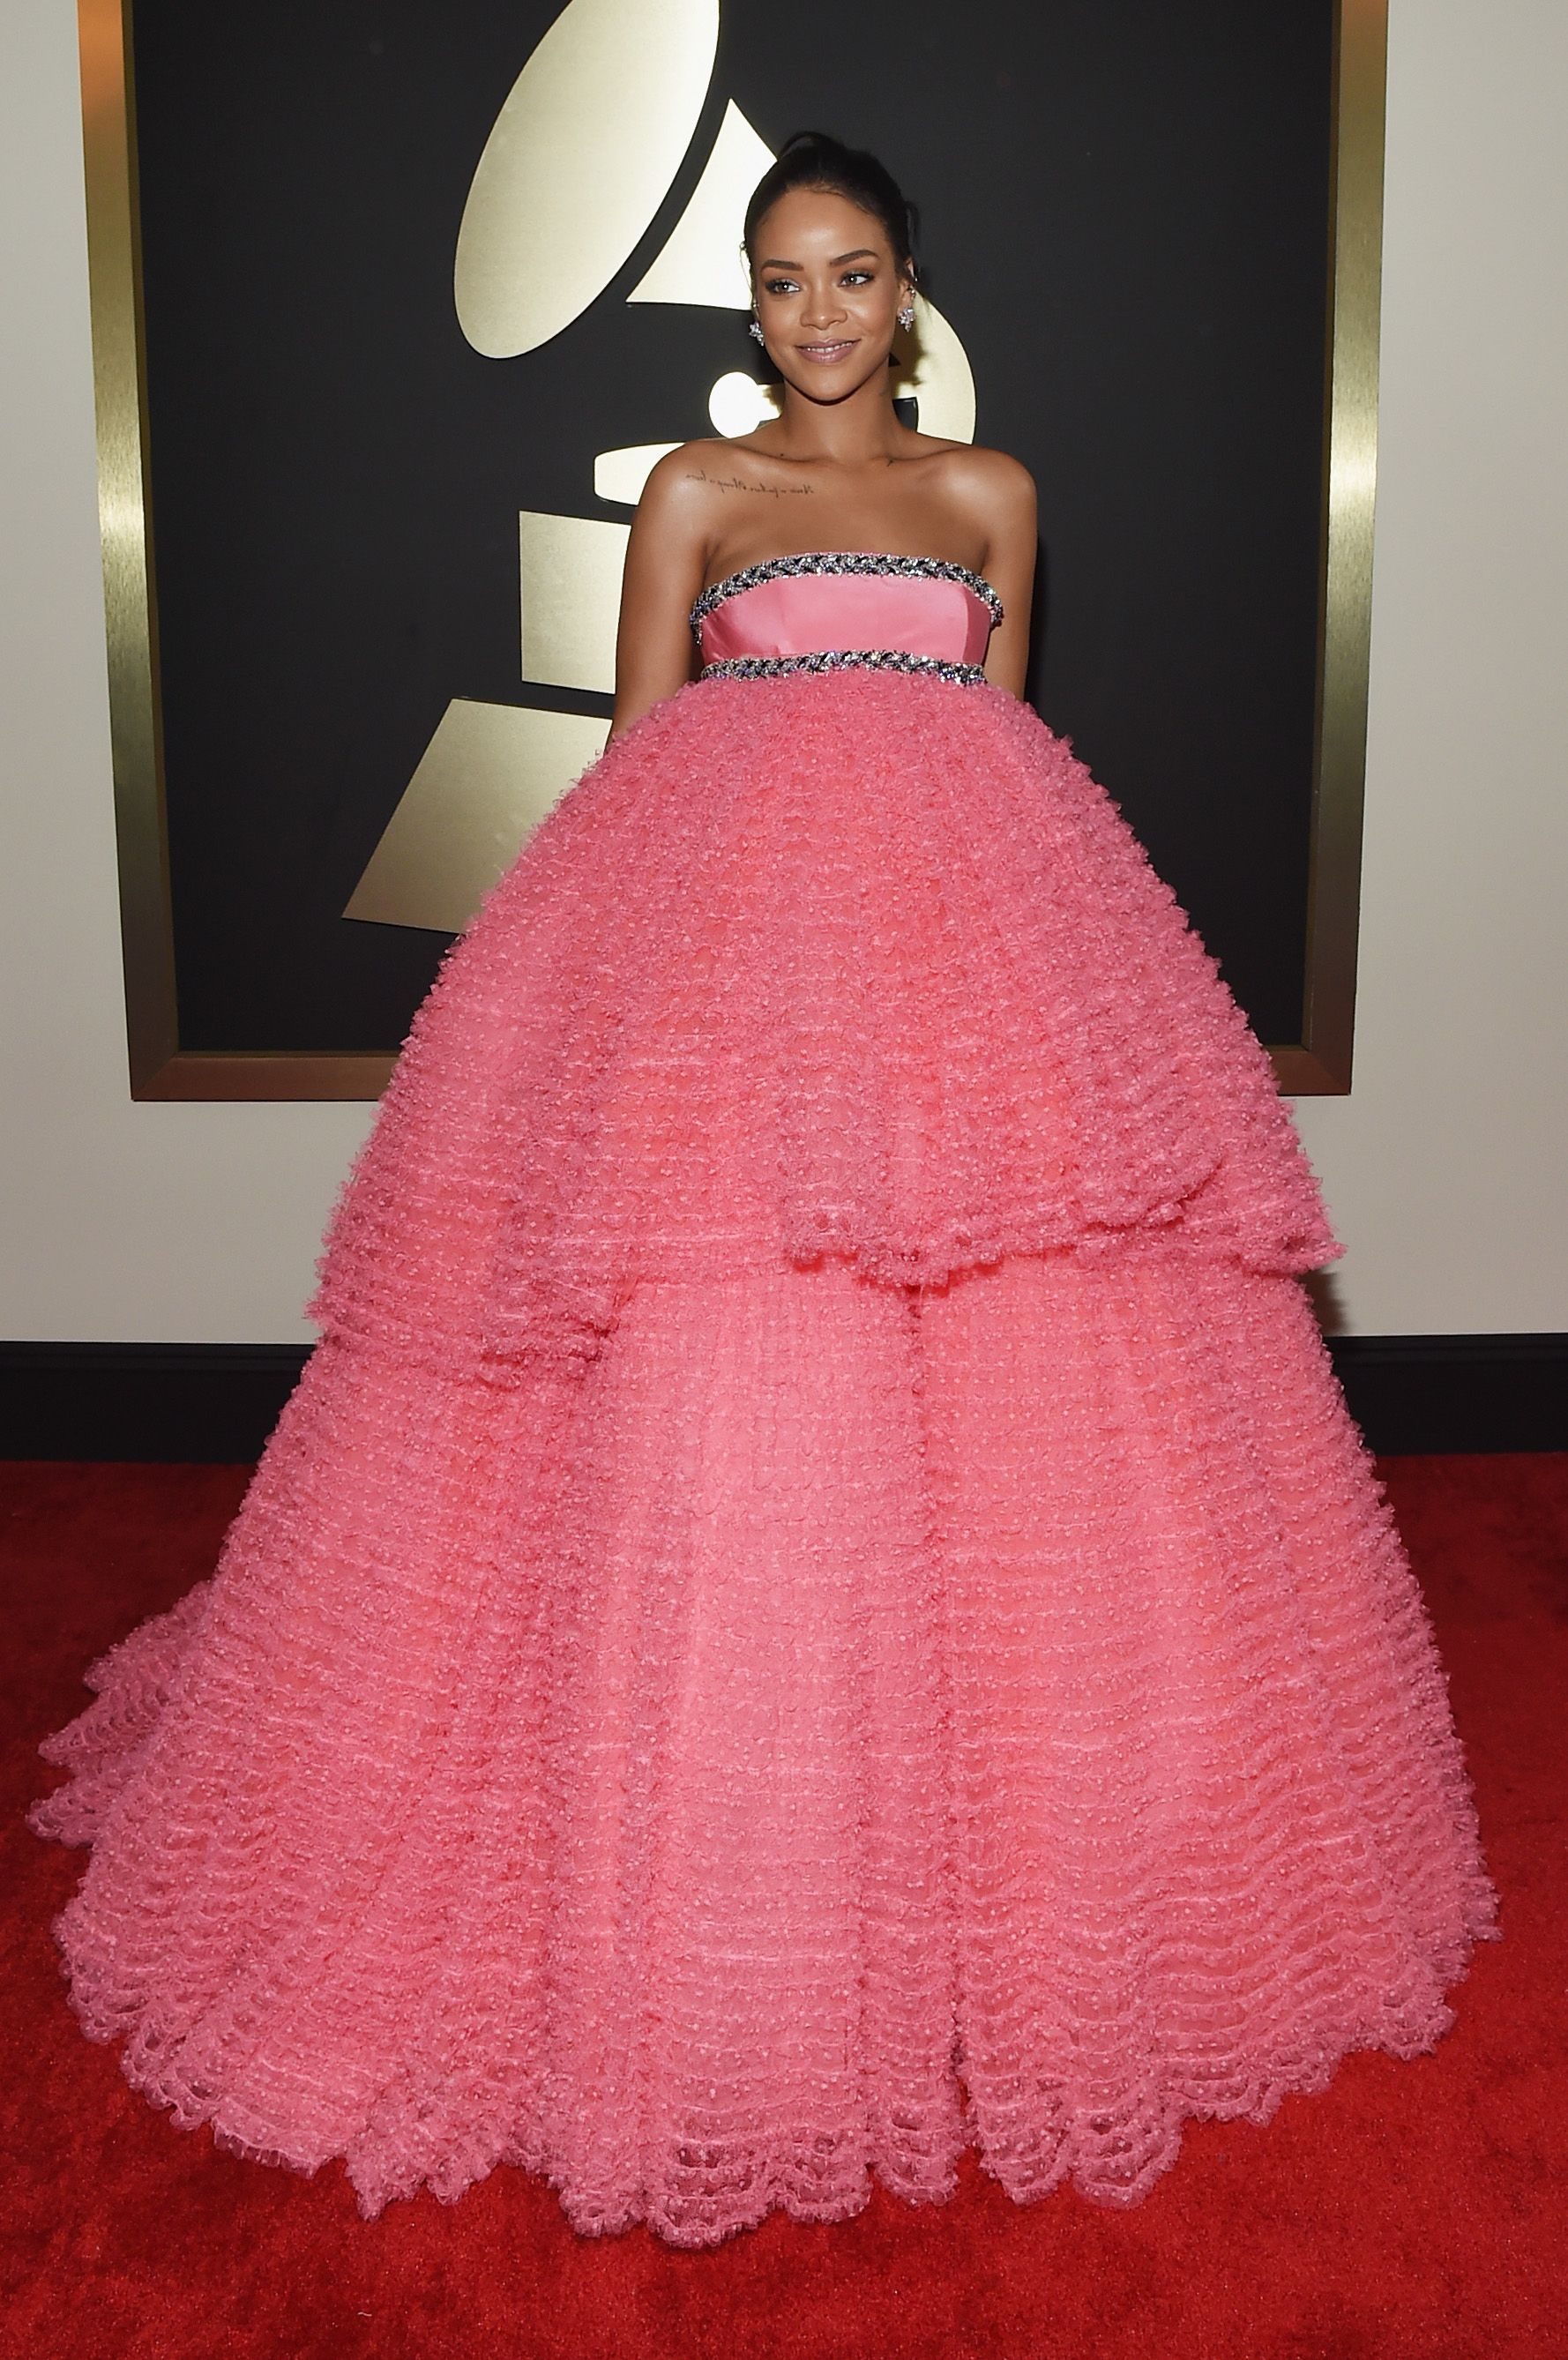 grammys 2015 the best dressed celebrities from the red. Black Bedroom Furniture Sets. Home Design Ideas